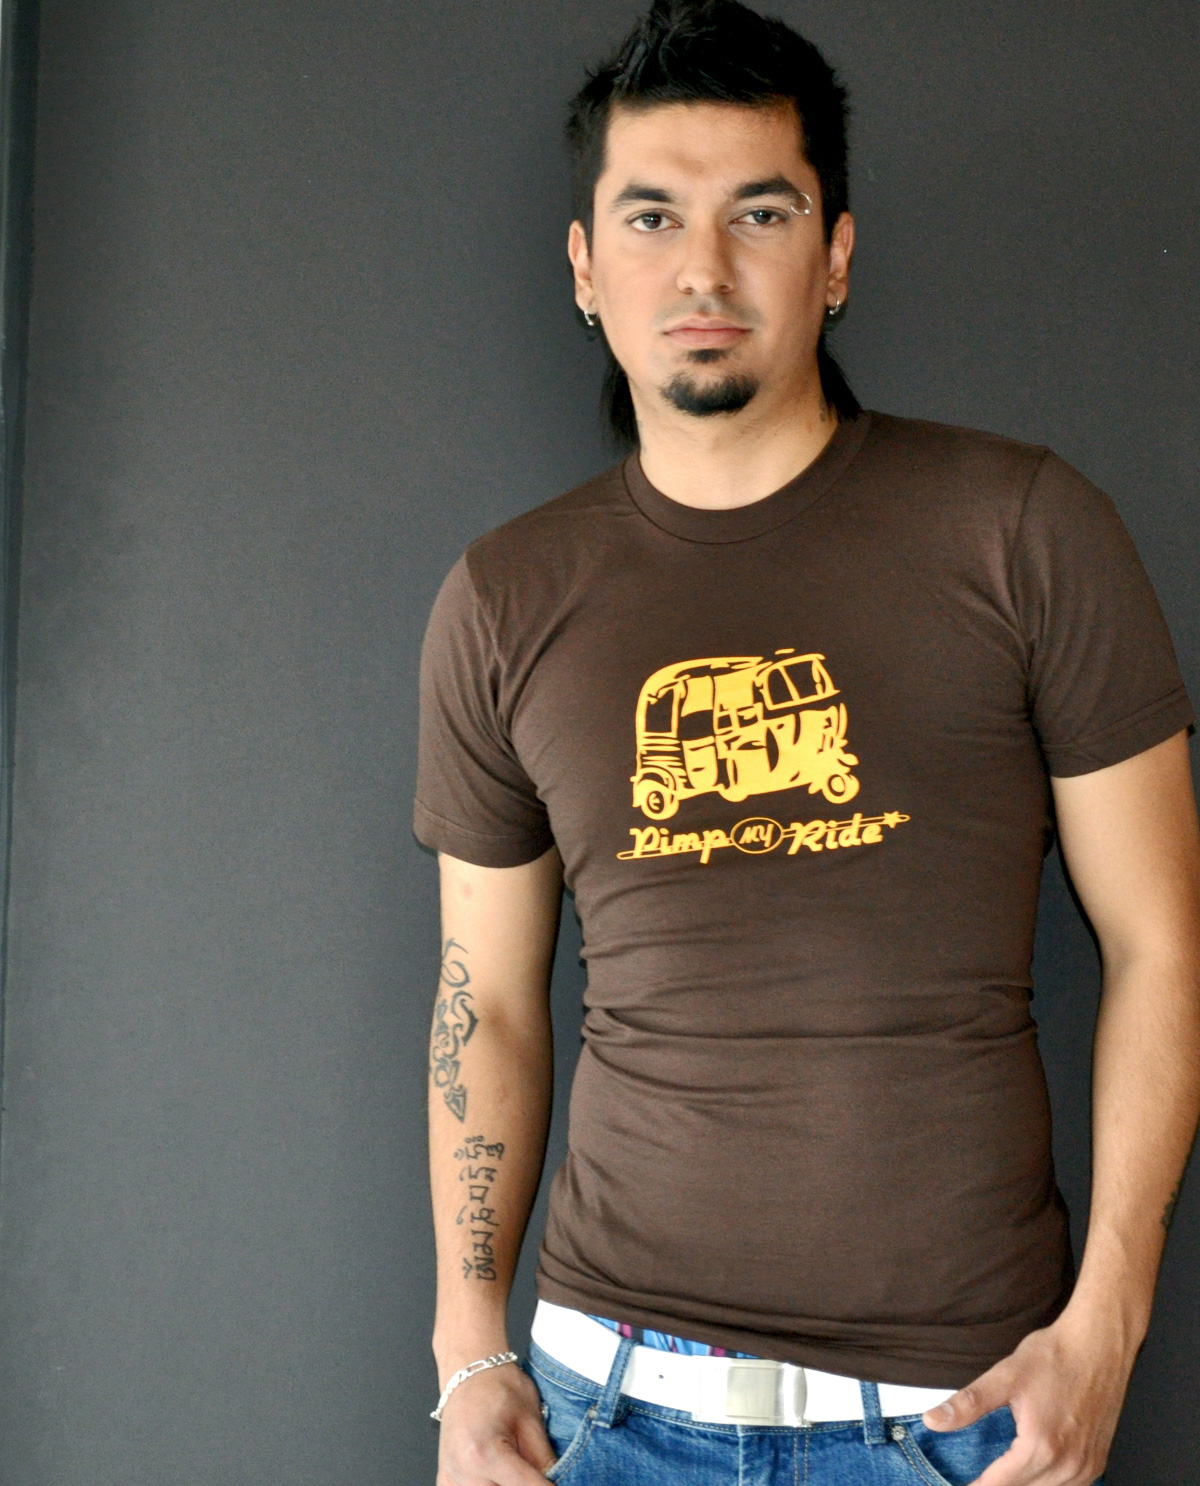 South Asian Male Model wearing American Apparel Jersey T shirt with South Asian themed graphic design on front.